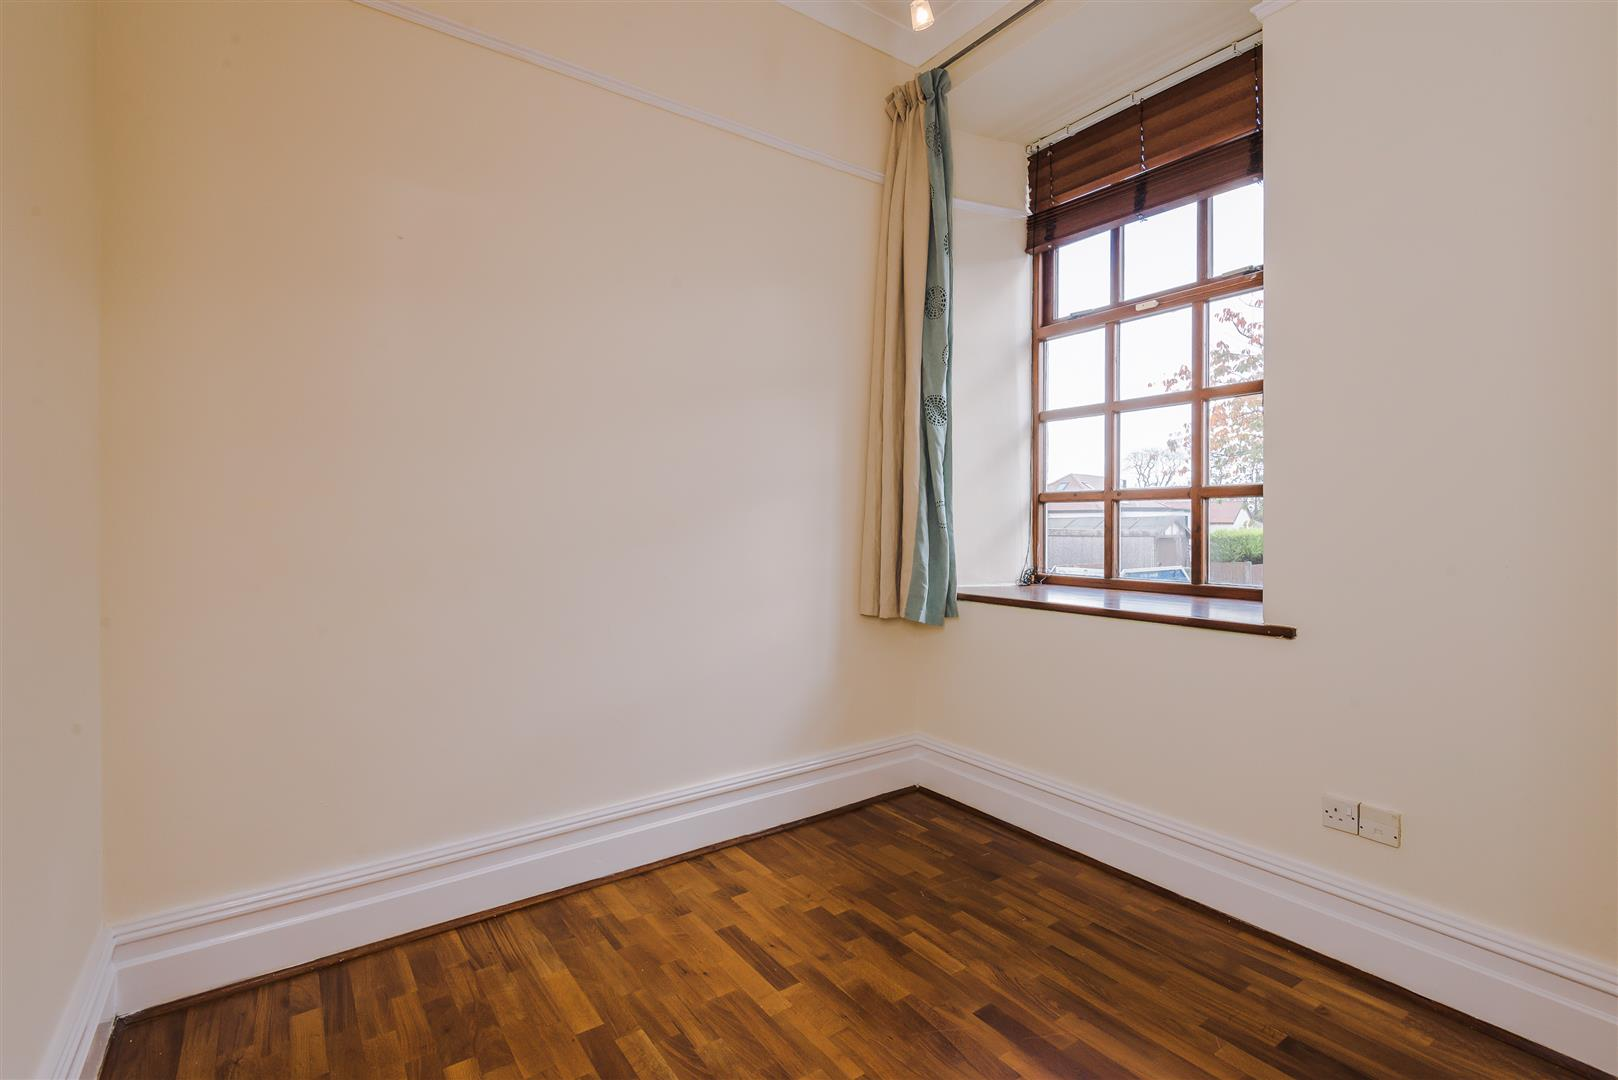 2 Bedroom Apartment For Sale Image 7